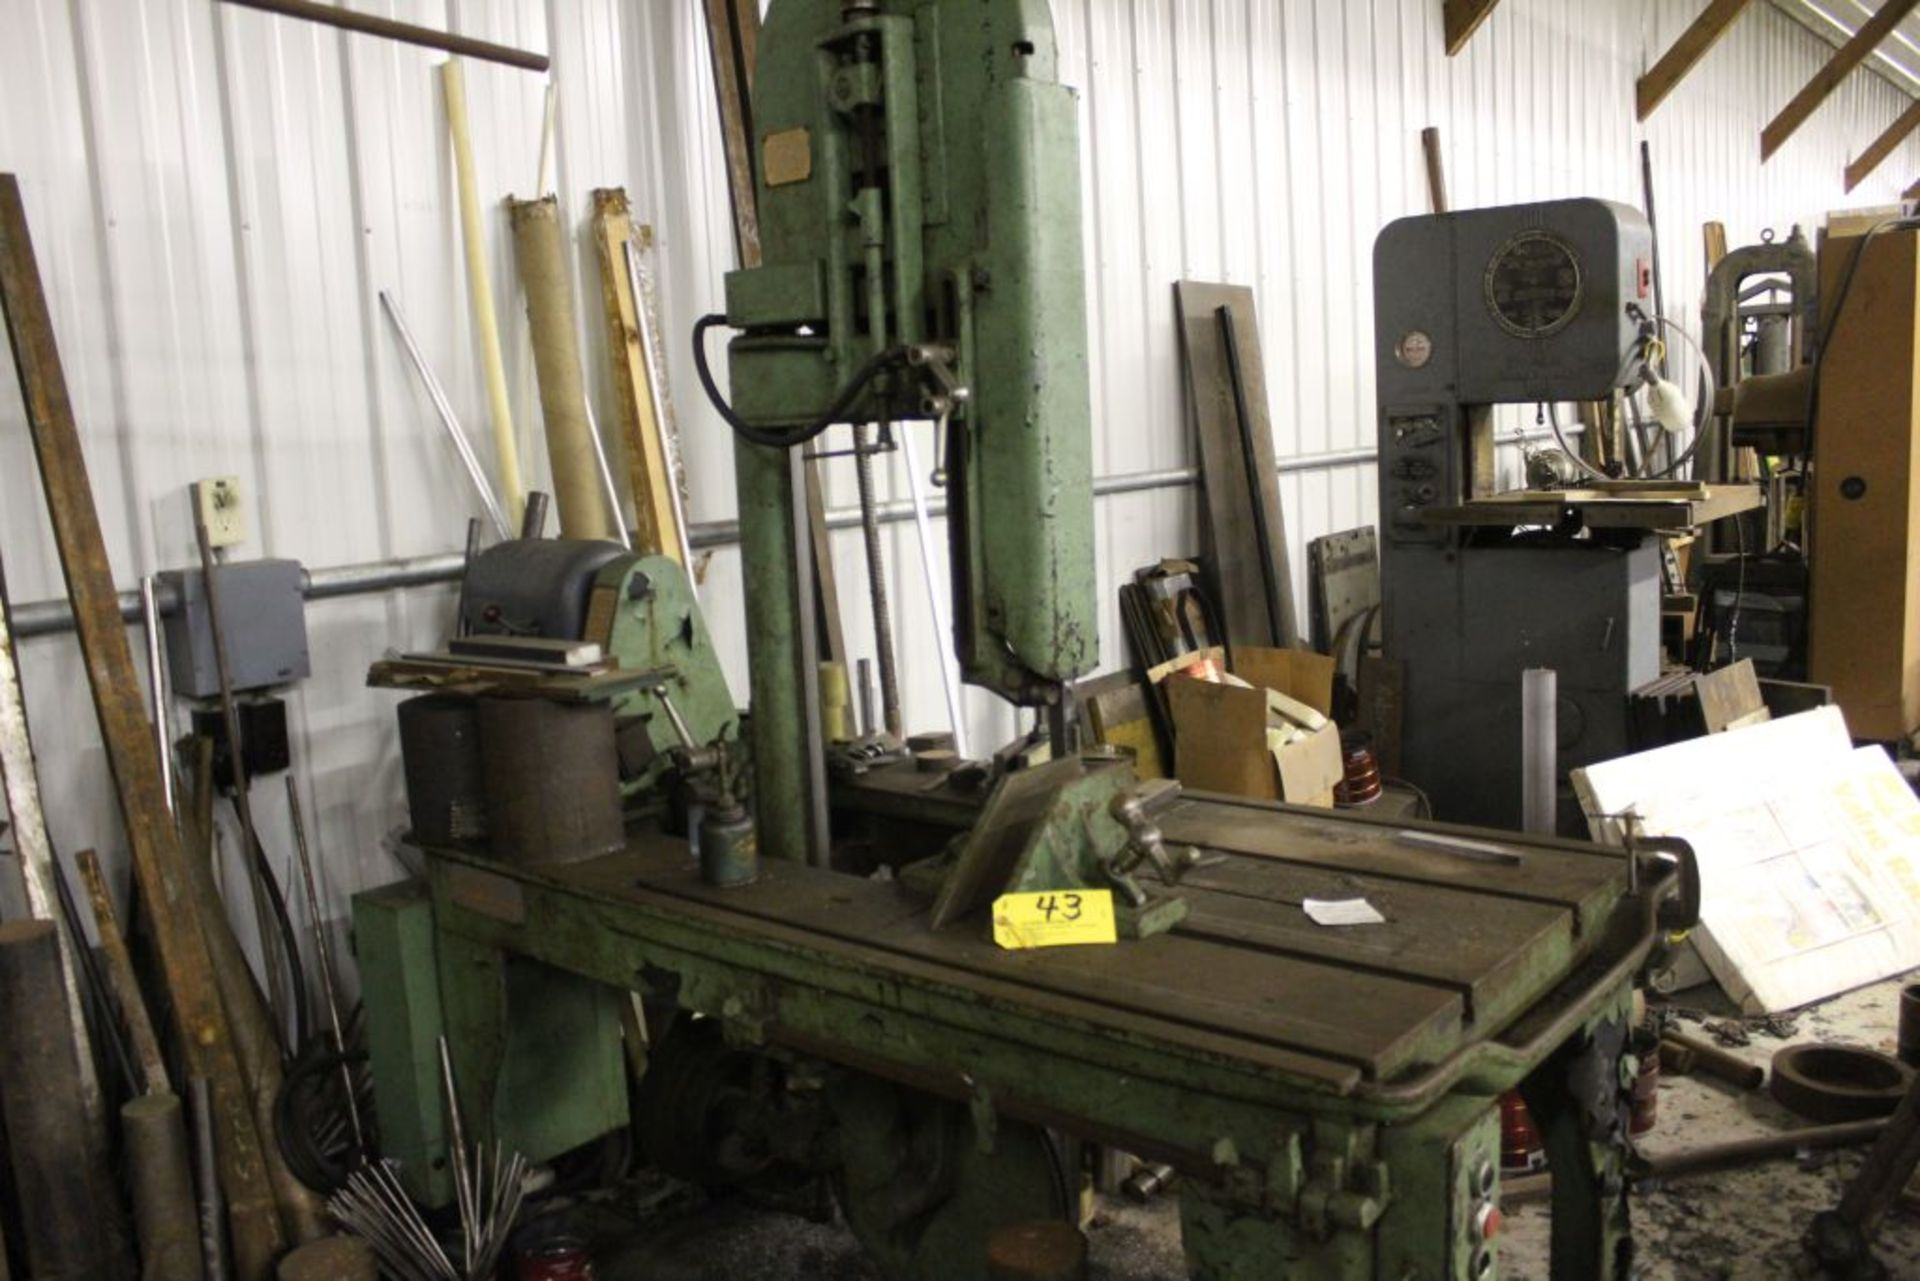 Marvel bandsaw, model 8/M8, sn 88031, 3-speed, vertical / miter cut. - Image 2 of 2